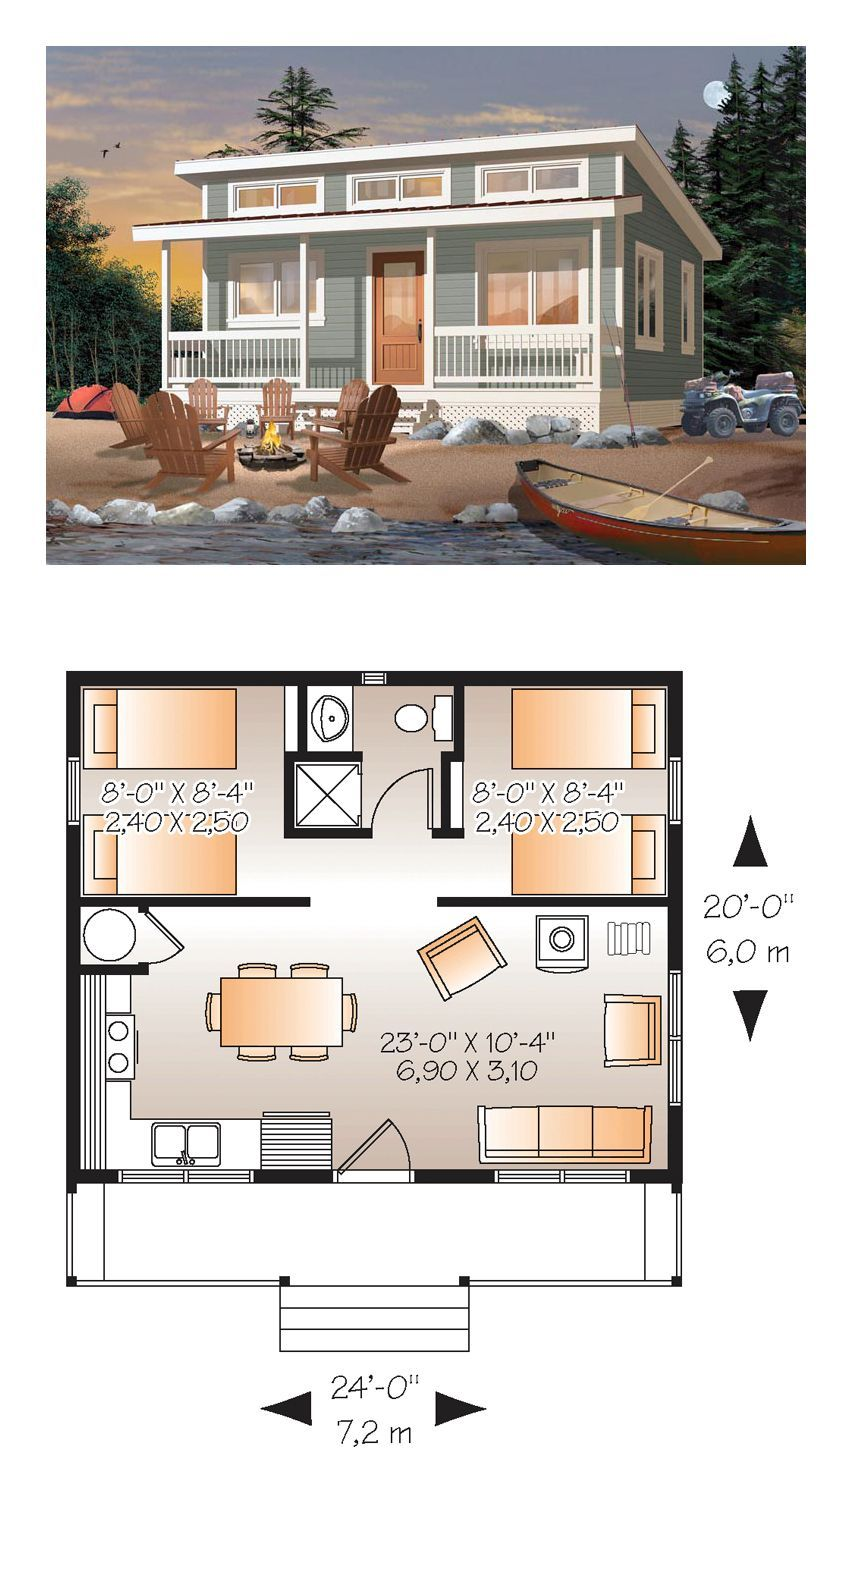 Stupendous Tiny House Plan 76166 Total Living Area 480 Sq Ft 2 Home Interior And Landscaping Oversignezvosmurscom